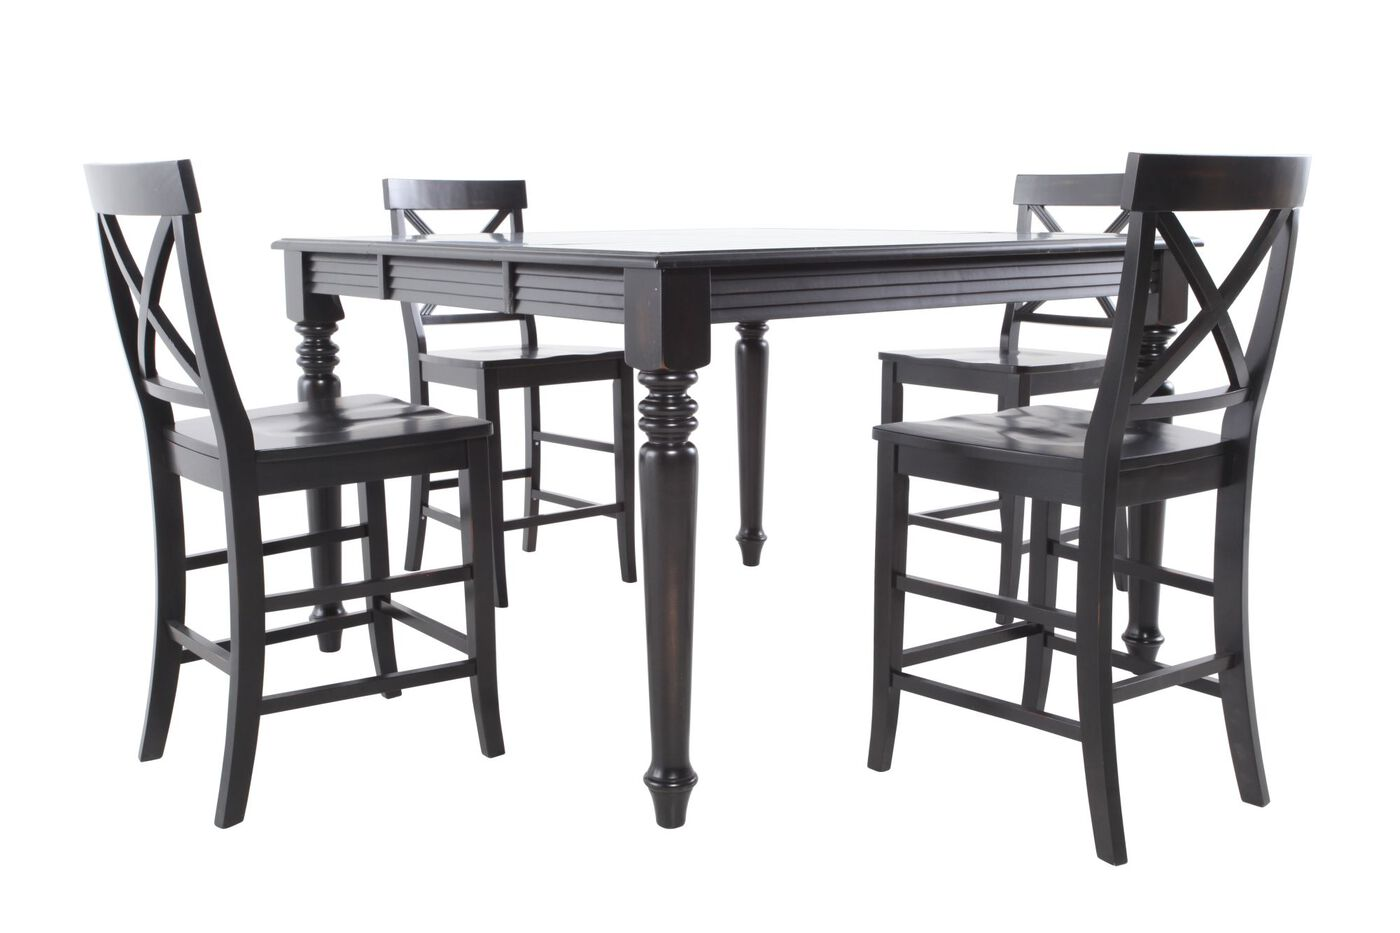 MB Home Rubbed Black Five Piece Pub Set Mathis Brothers Furniture